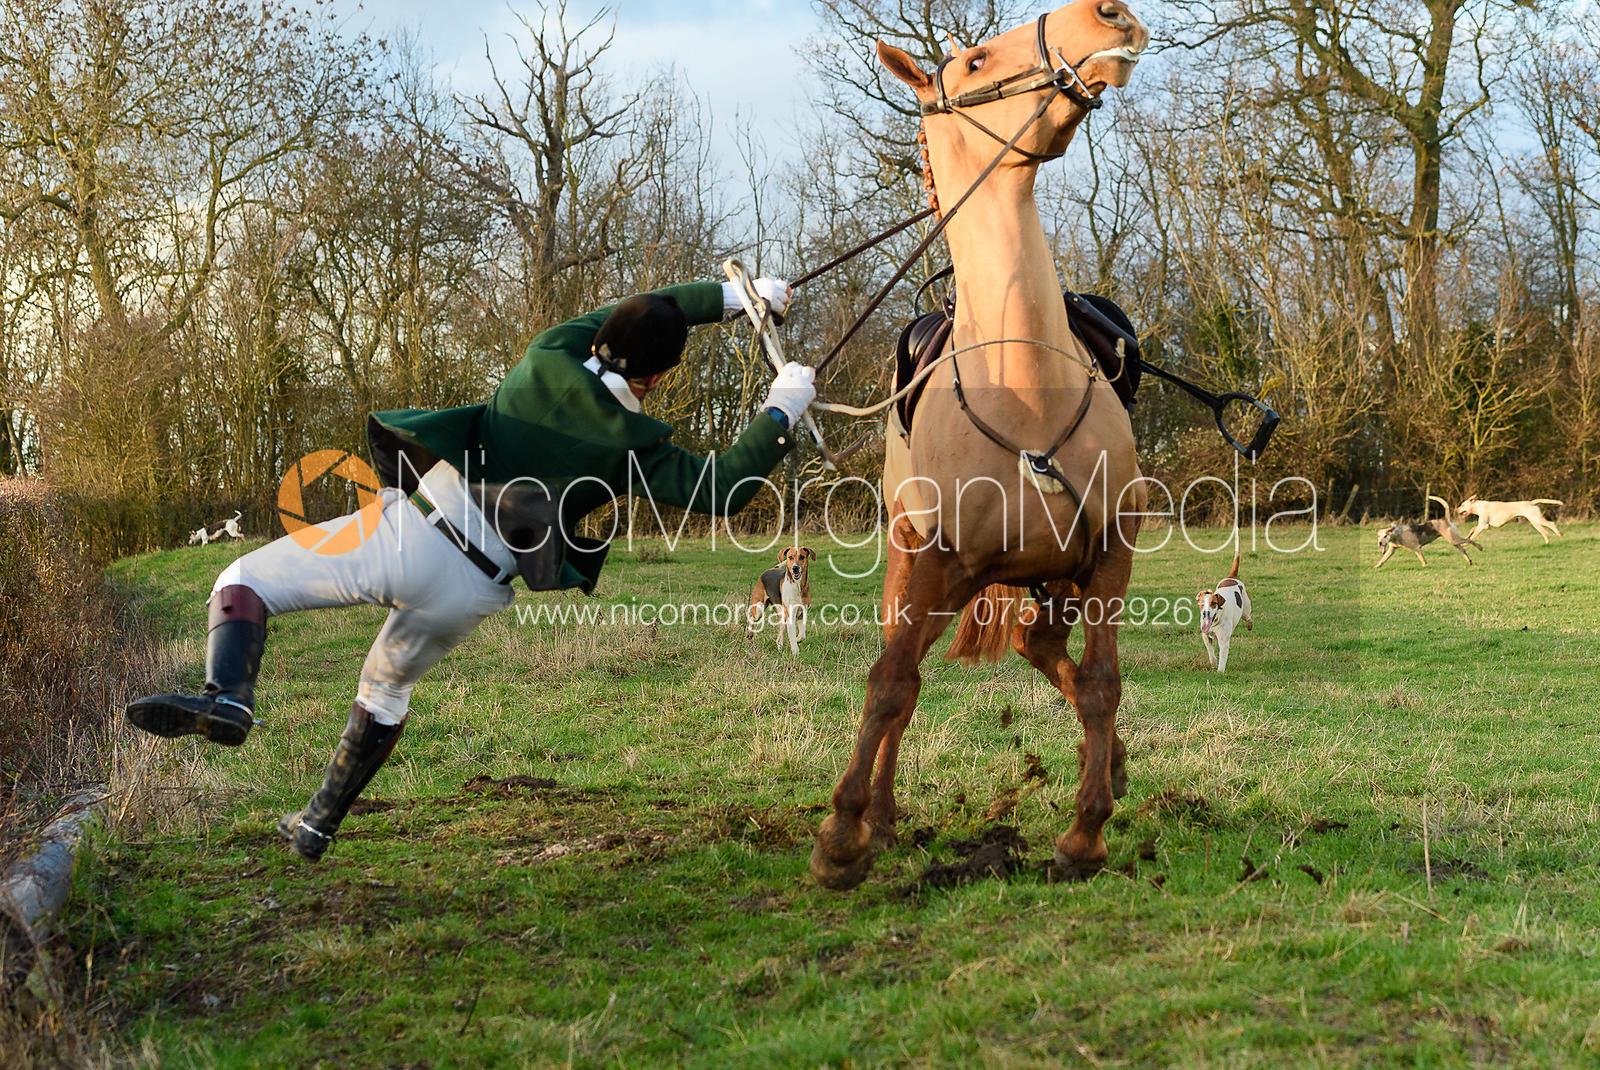 Duncan Maxwell falling from his horse on the third line. The Cambridge University Drag Hounds at Great Gidding 9/12